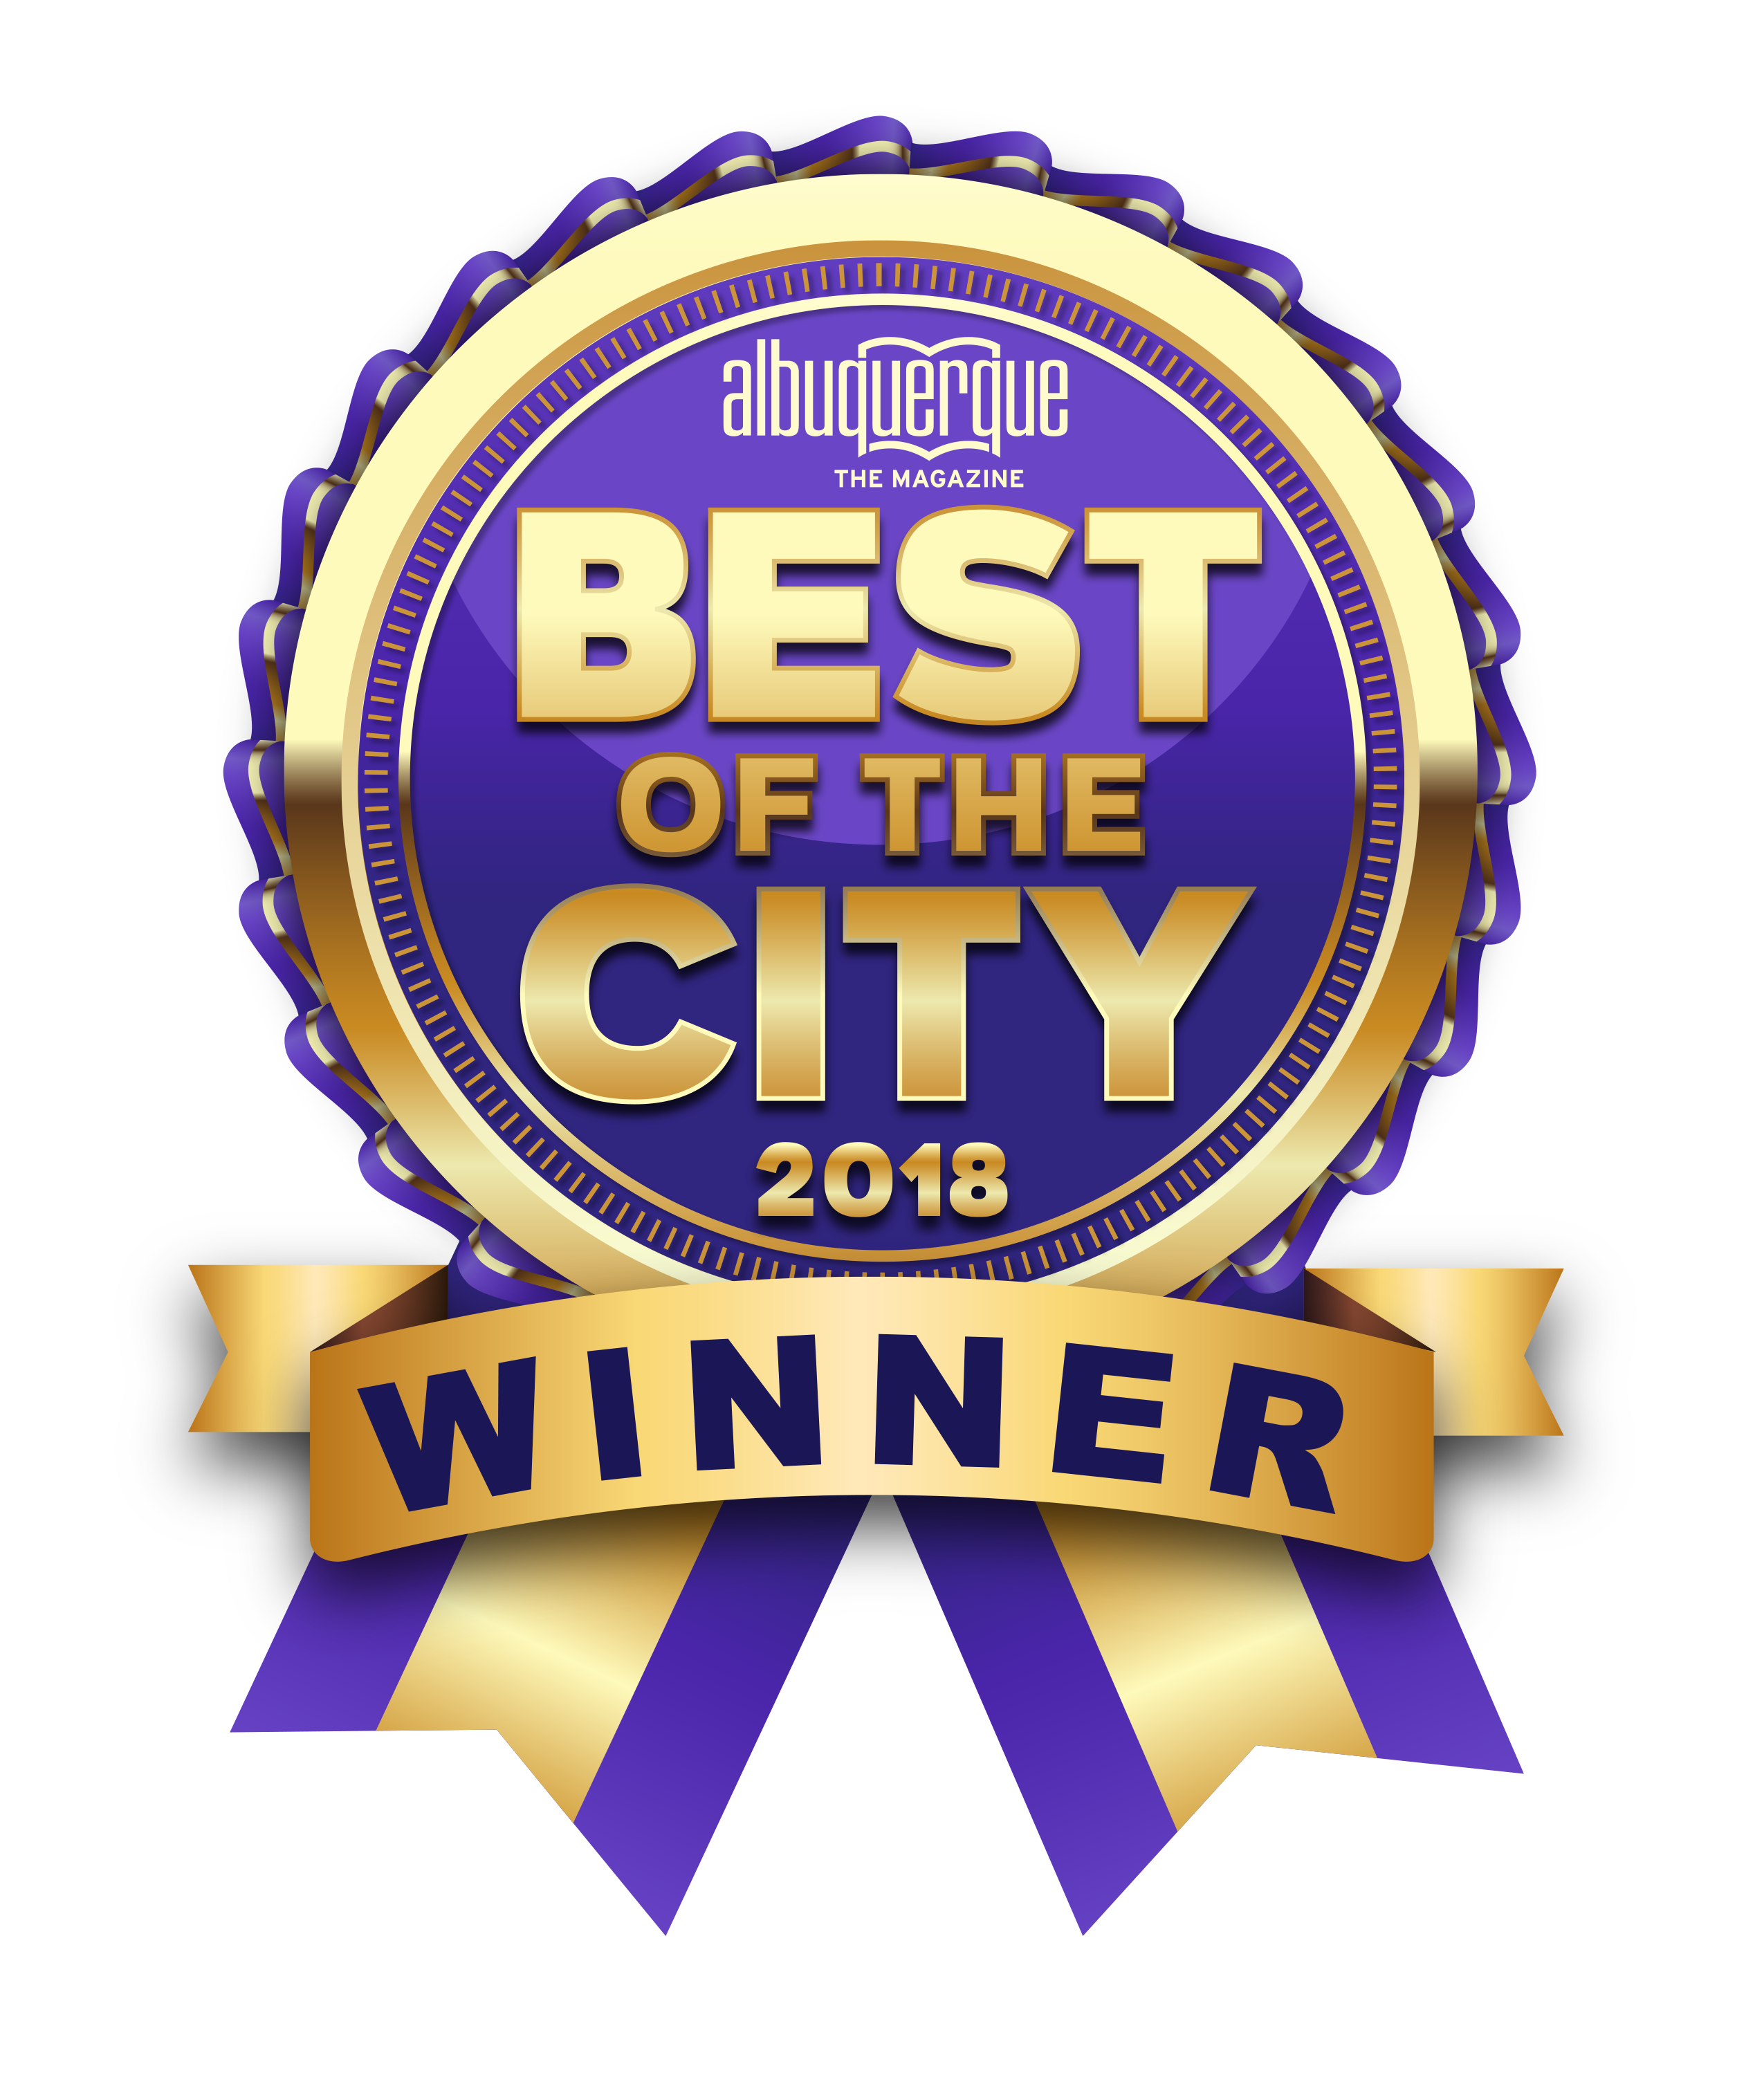 2018 Best of the City Winner